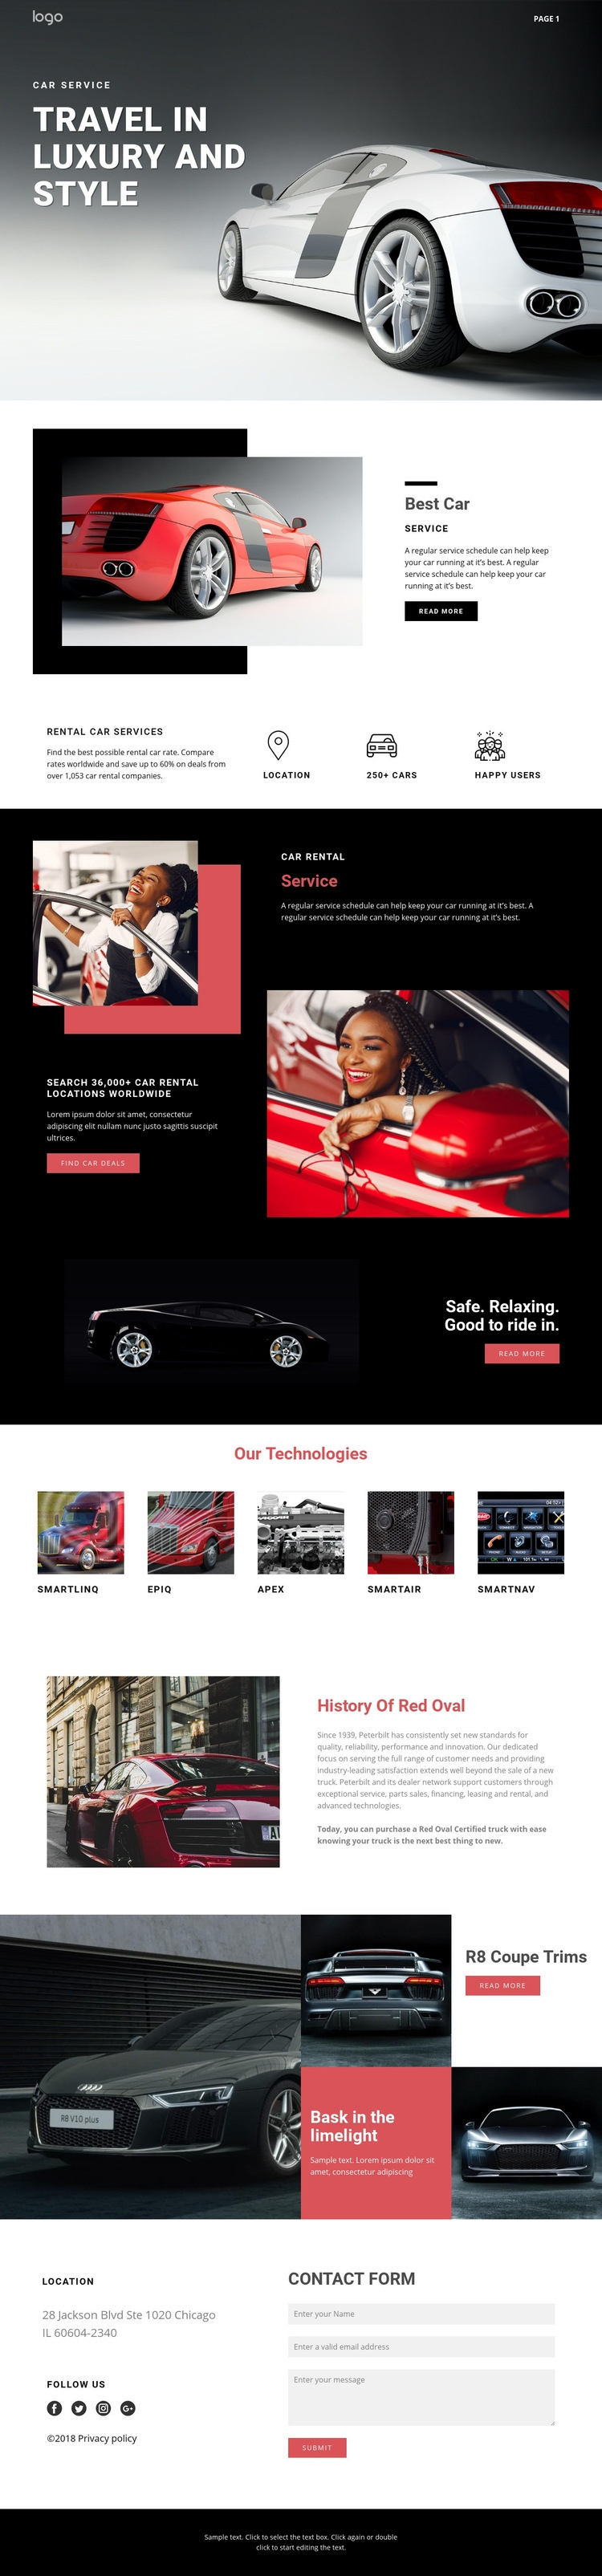 Traveling in luxury cars Html Code Example